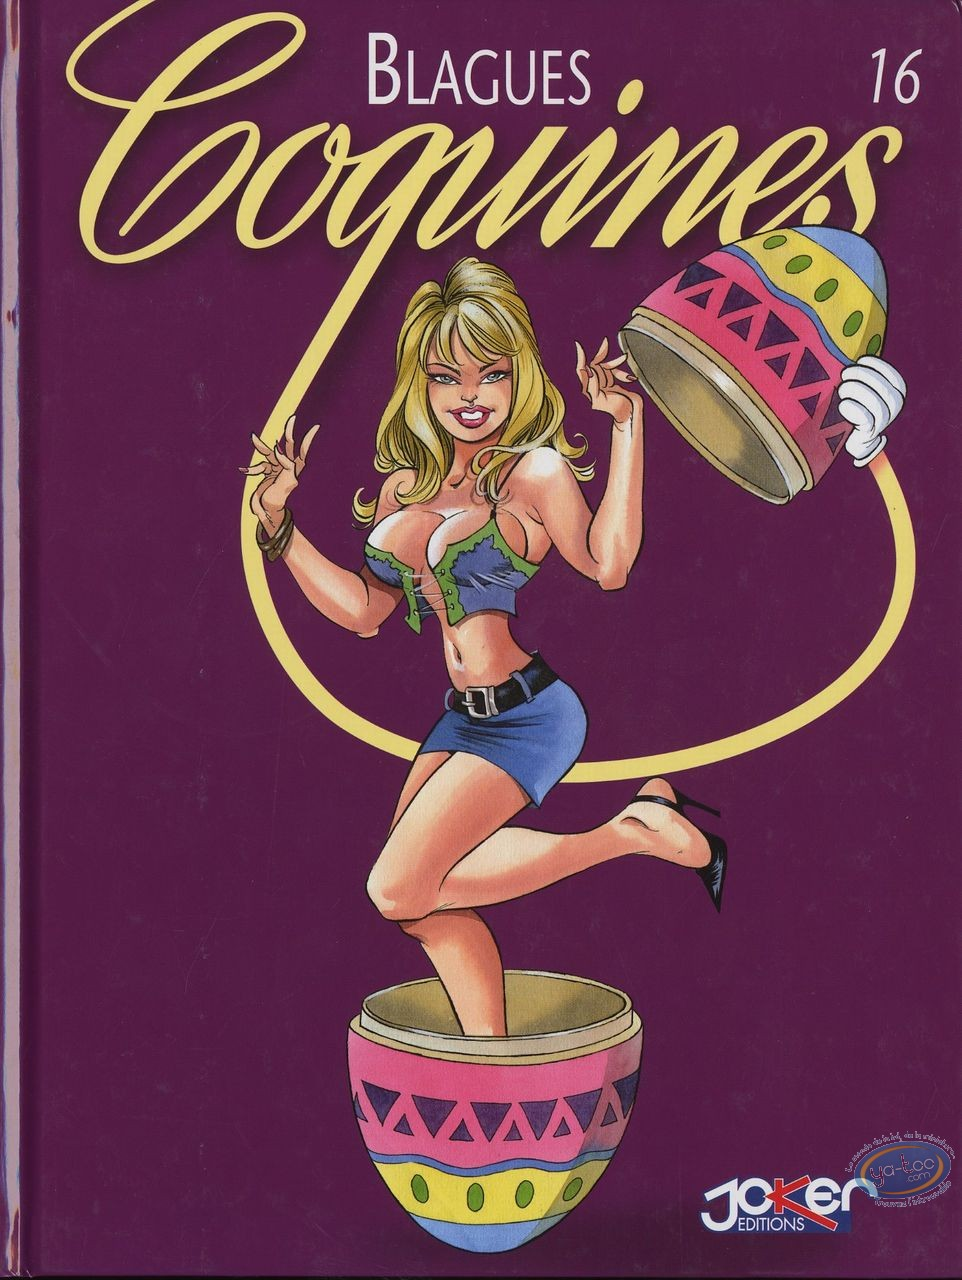 BD adultes, Blagues Coquines : Blagues Coquines, Tome 16